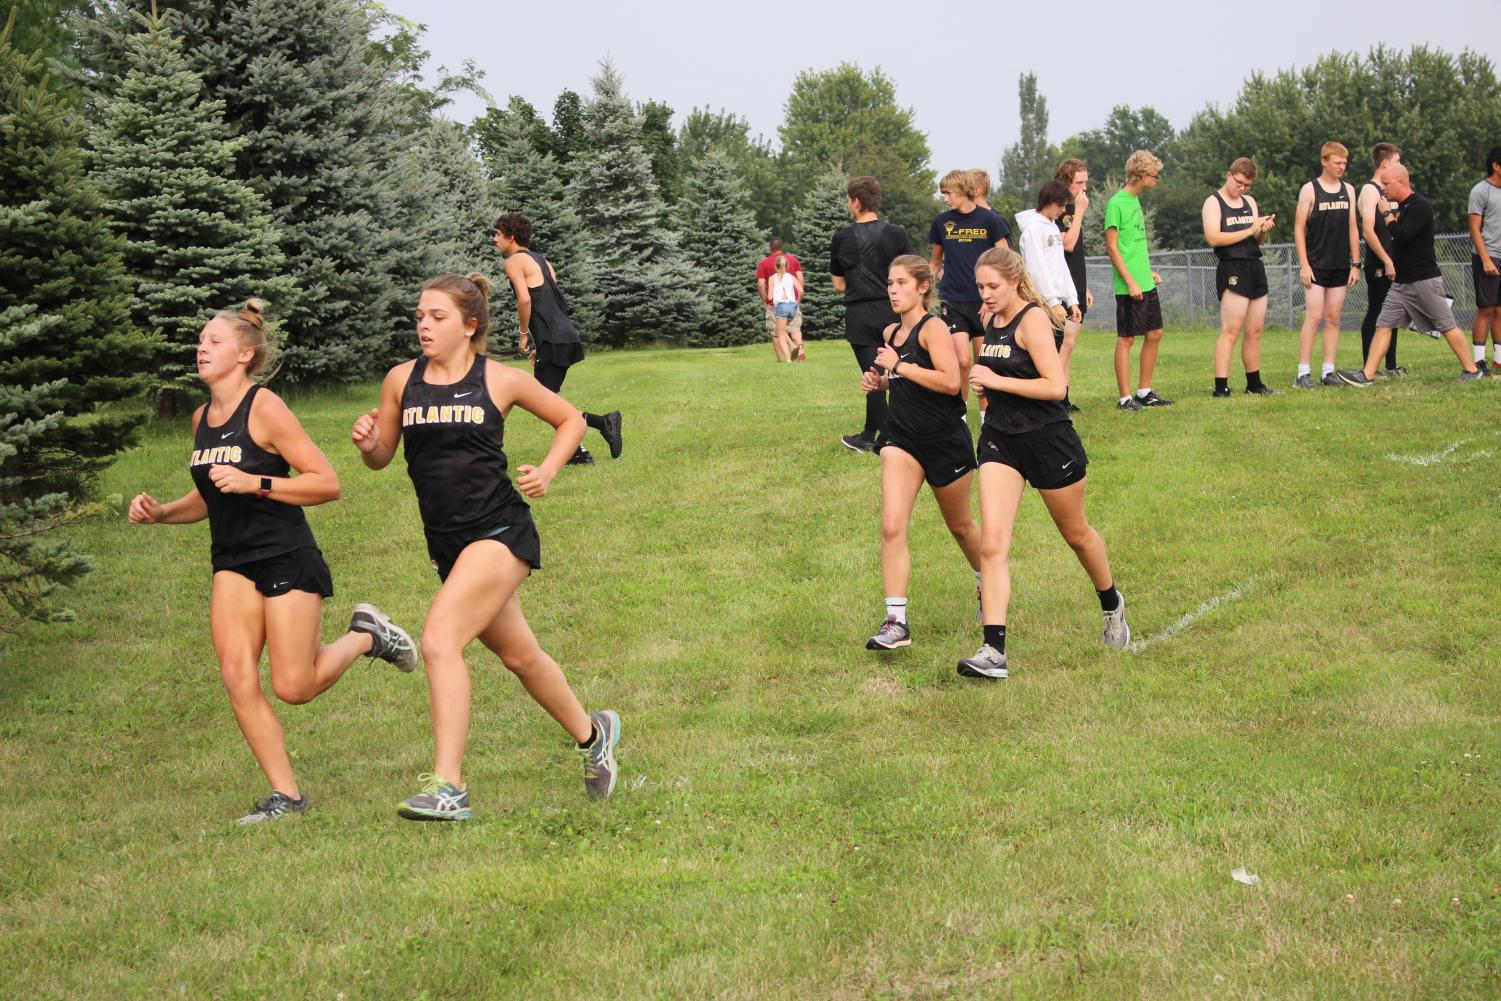 FOLLOW THE LEADER - juniors Corri Pelzer and Kelsie Siedlik and seniors Erin Wendt and Halsey Bailey take off in the first 200 meters of the time trial course. All four have been consistent JV runners for the girls team.